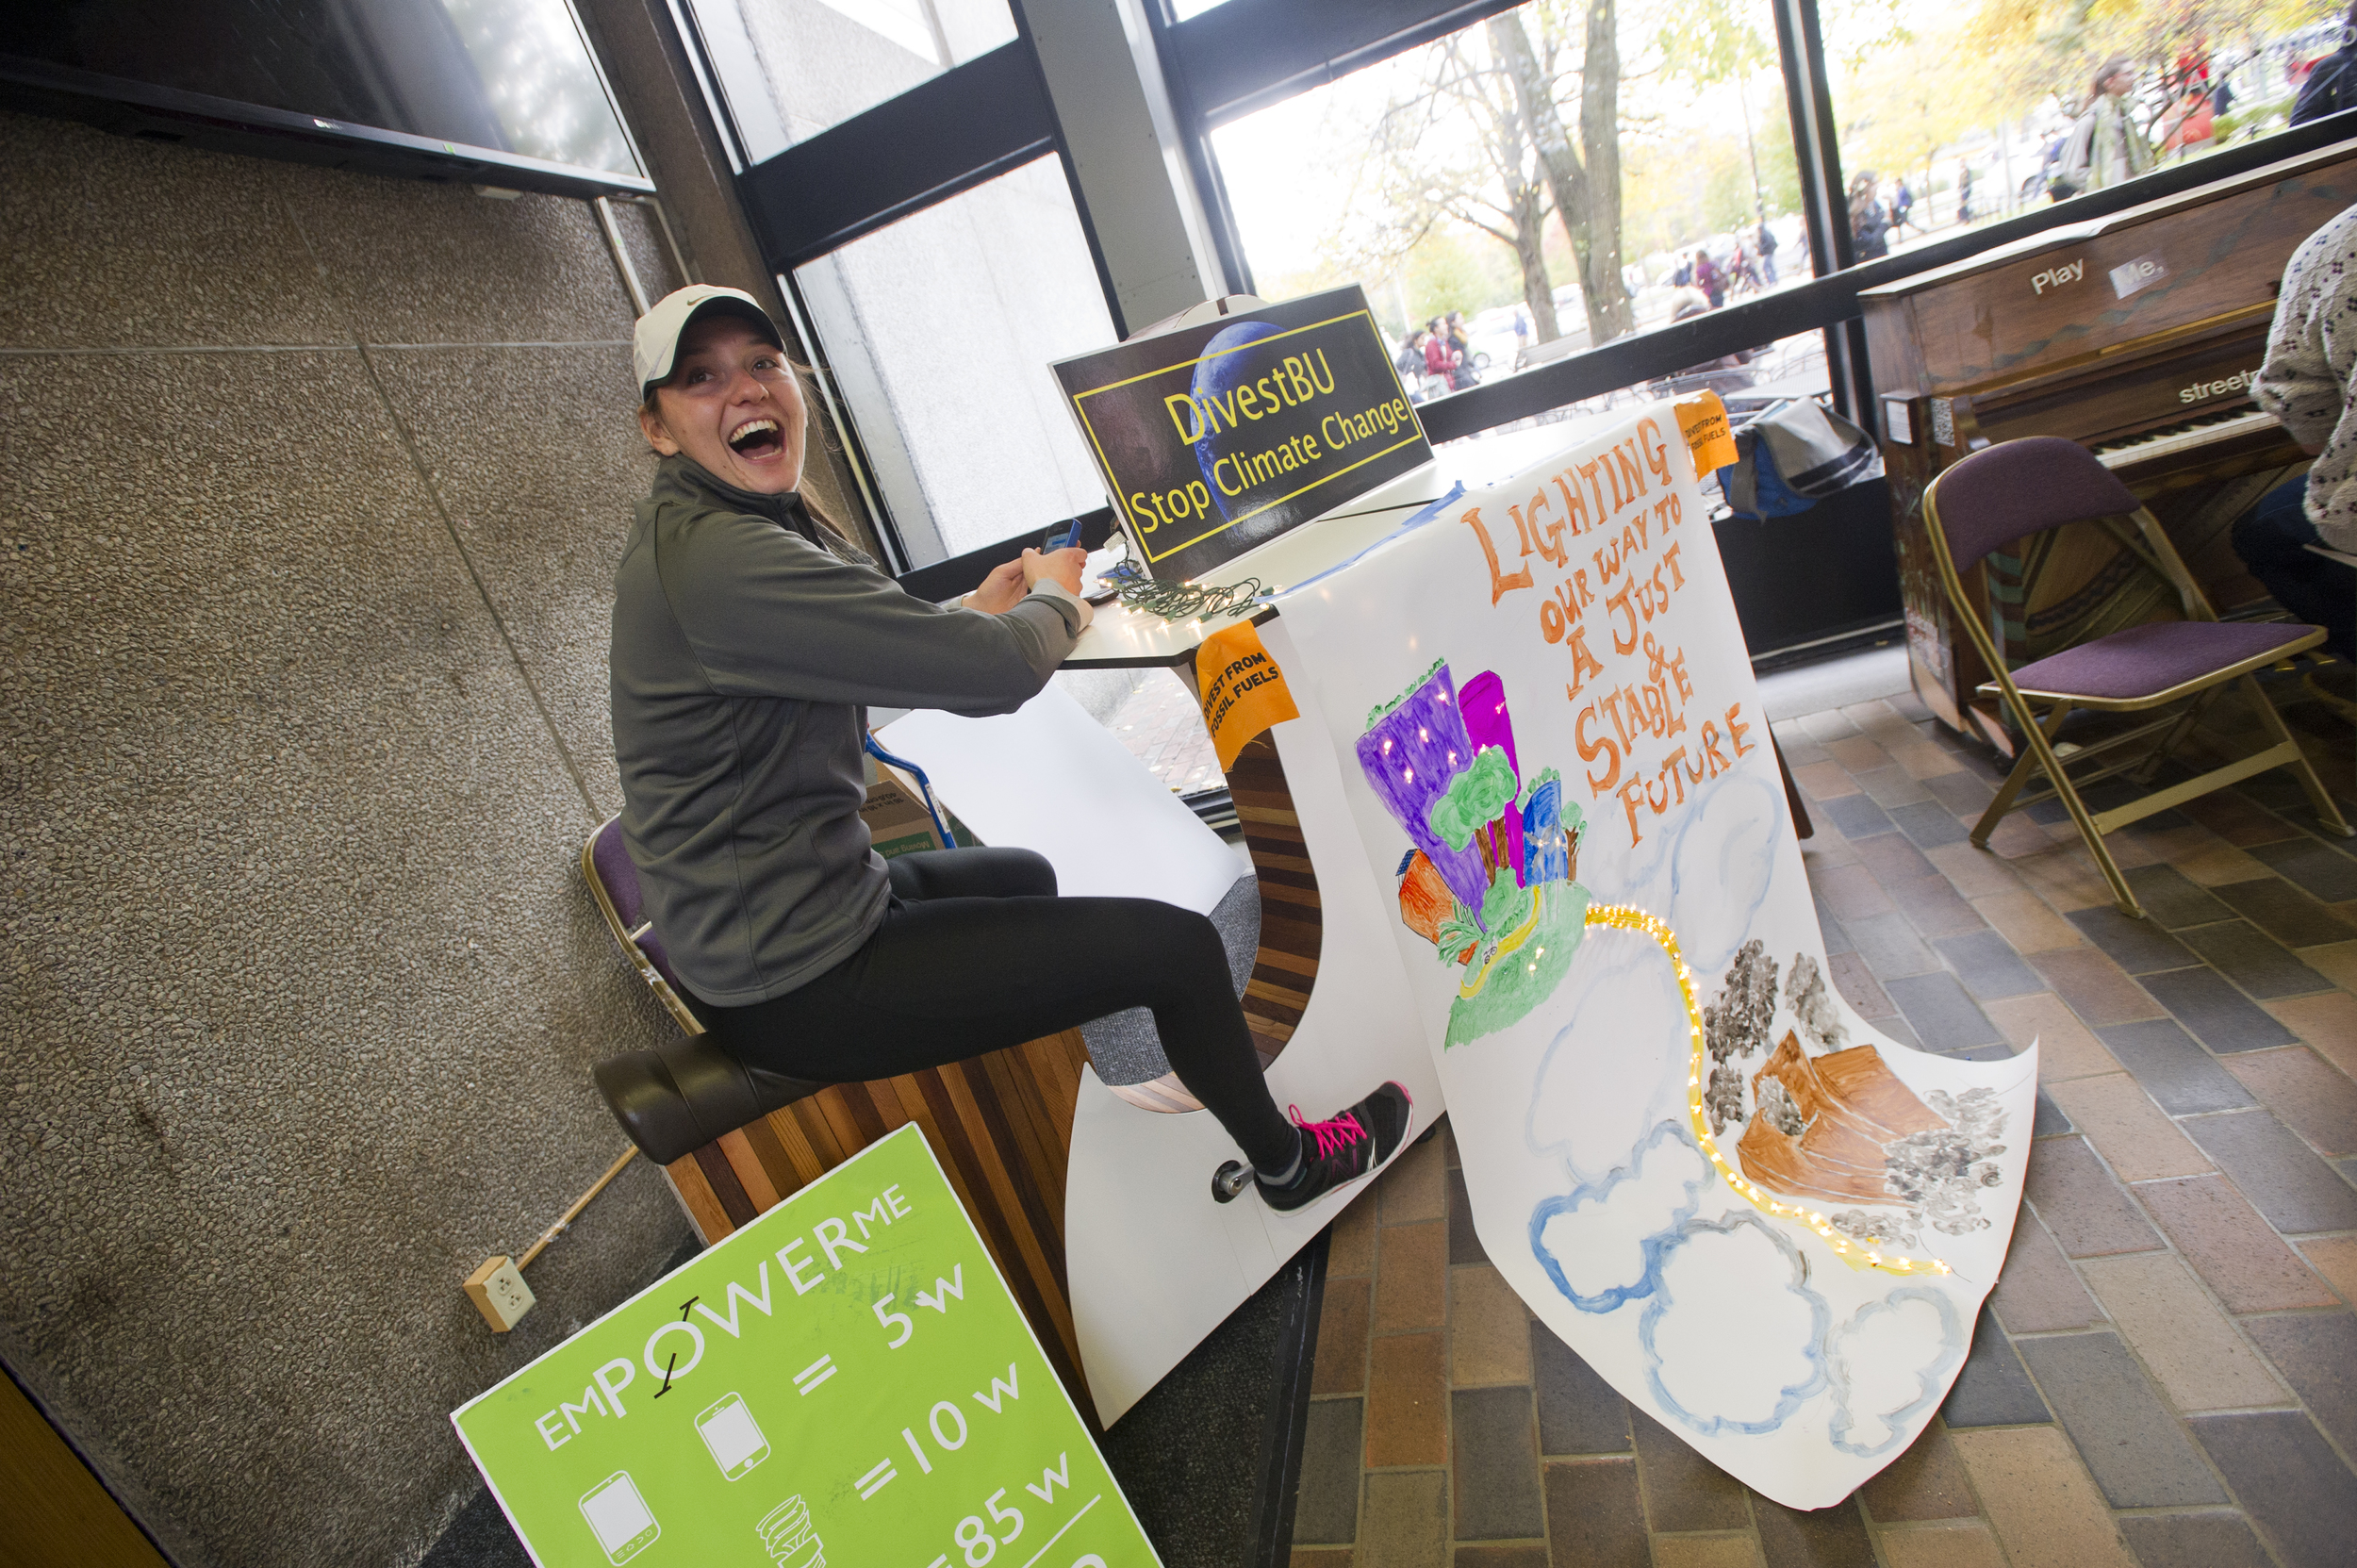 Claire Richer (CAS'15) from Students for a Just and Stable Future cycles to raise awareness of climate change in the GSU link November 7, 2014. The group was also sharing a petition in an effort to get BU to stop investing in fossil fuel companies. Photo by Cydney Scott for Boston University Photogra